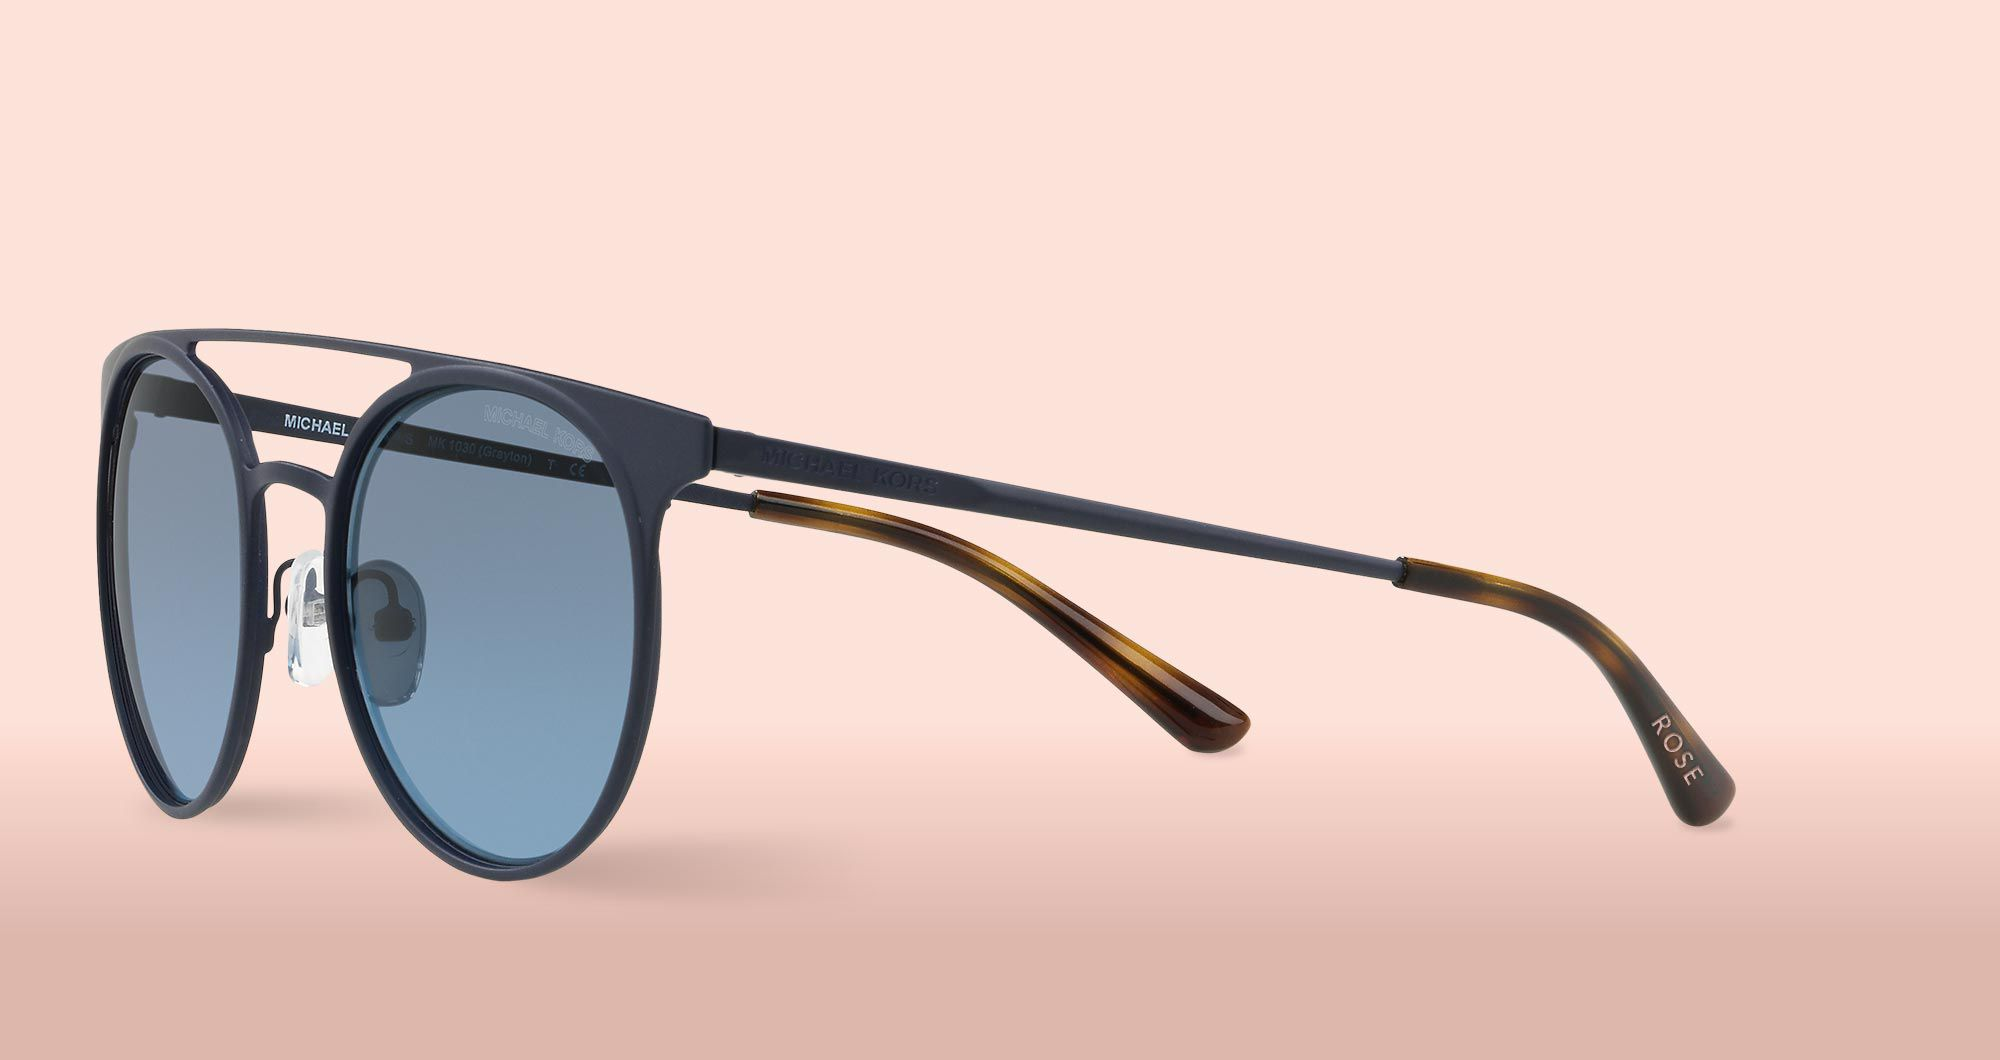 fde9cf2171405 EXCLUSIVELY AT SUNGLASS HUT Choose your Michael Kors style and call it by your  name. MICHAEL KORS SAVANNAH 2 Colours · MICHAEL KORS GRAYTON 4 Colours